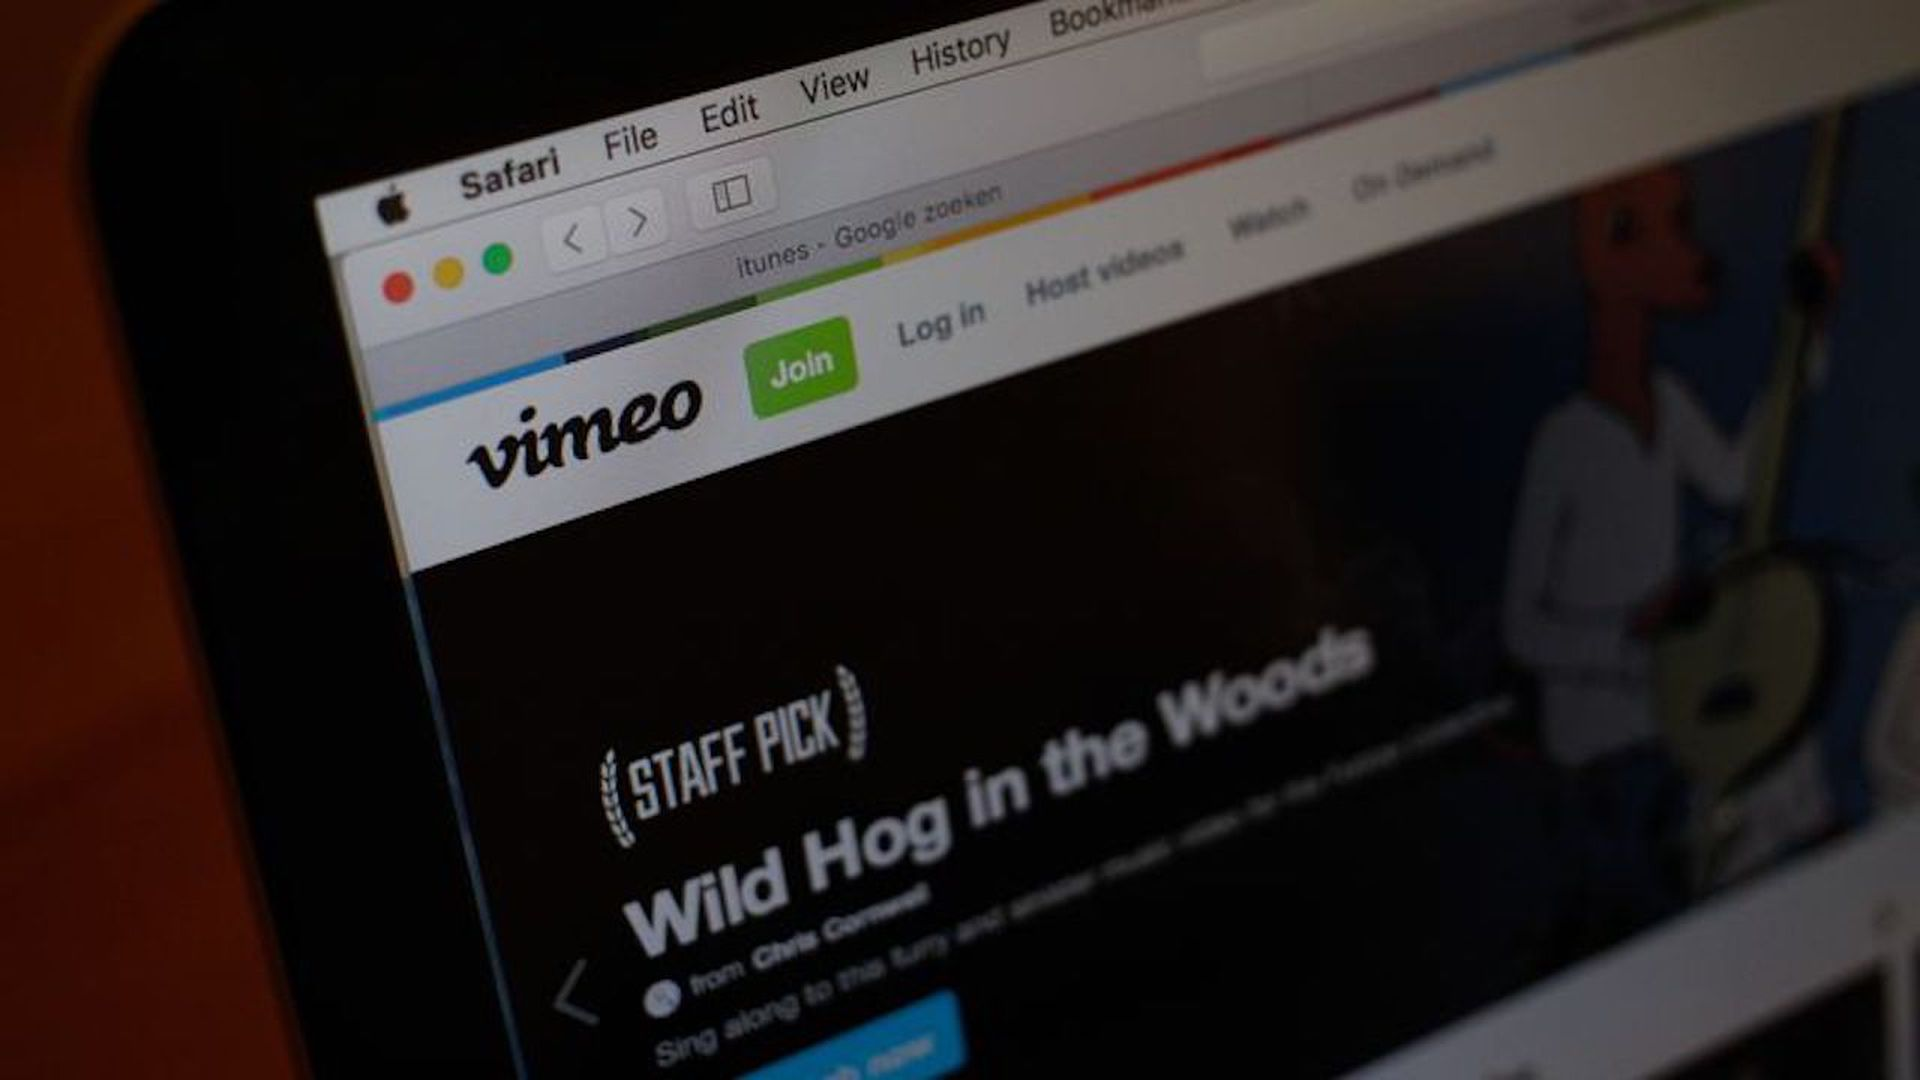 Techmeme: Vimeo launches Vimeo Enterprise for companies to